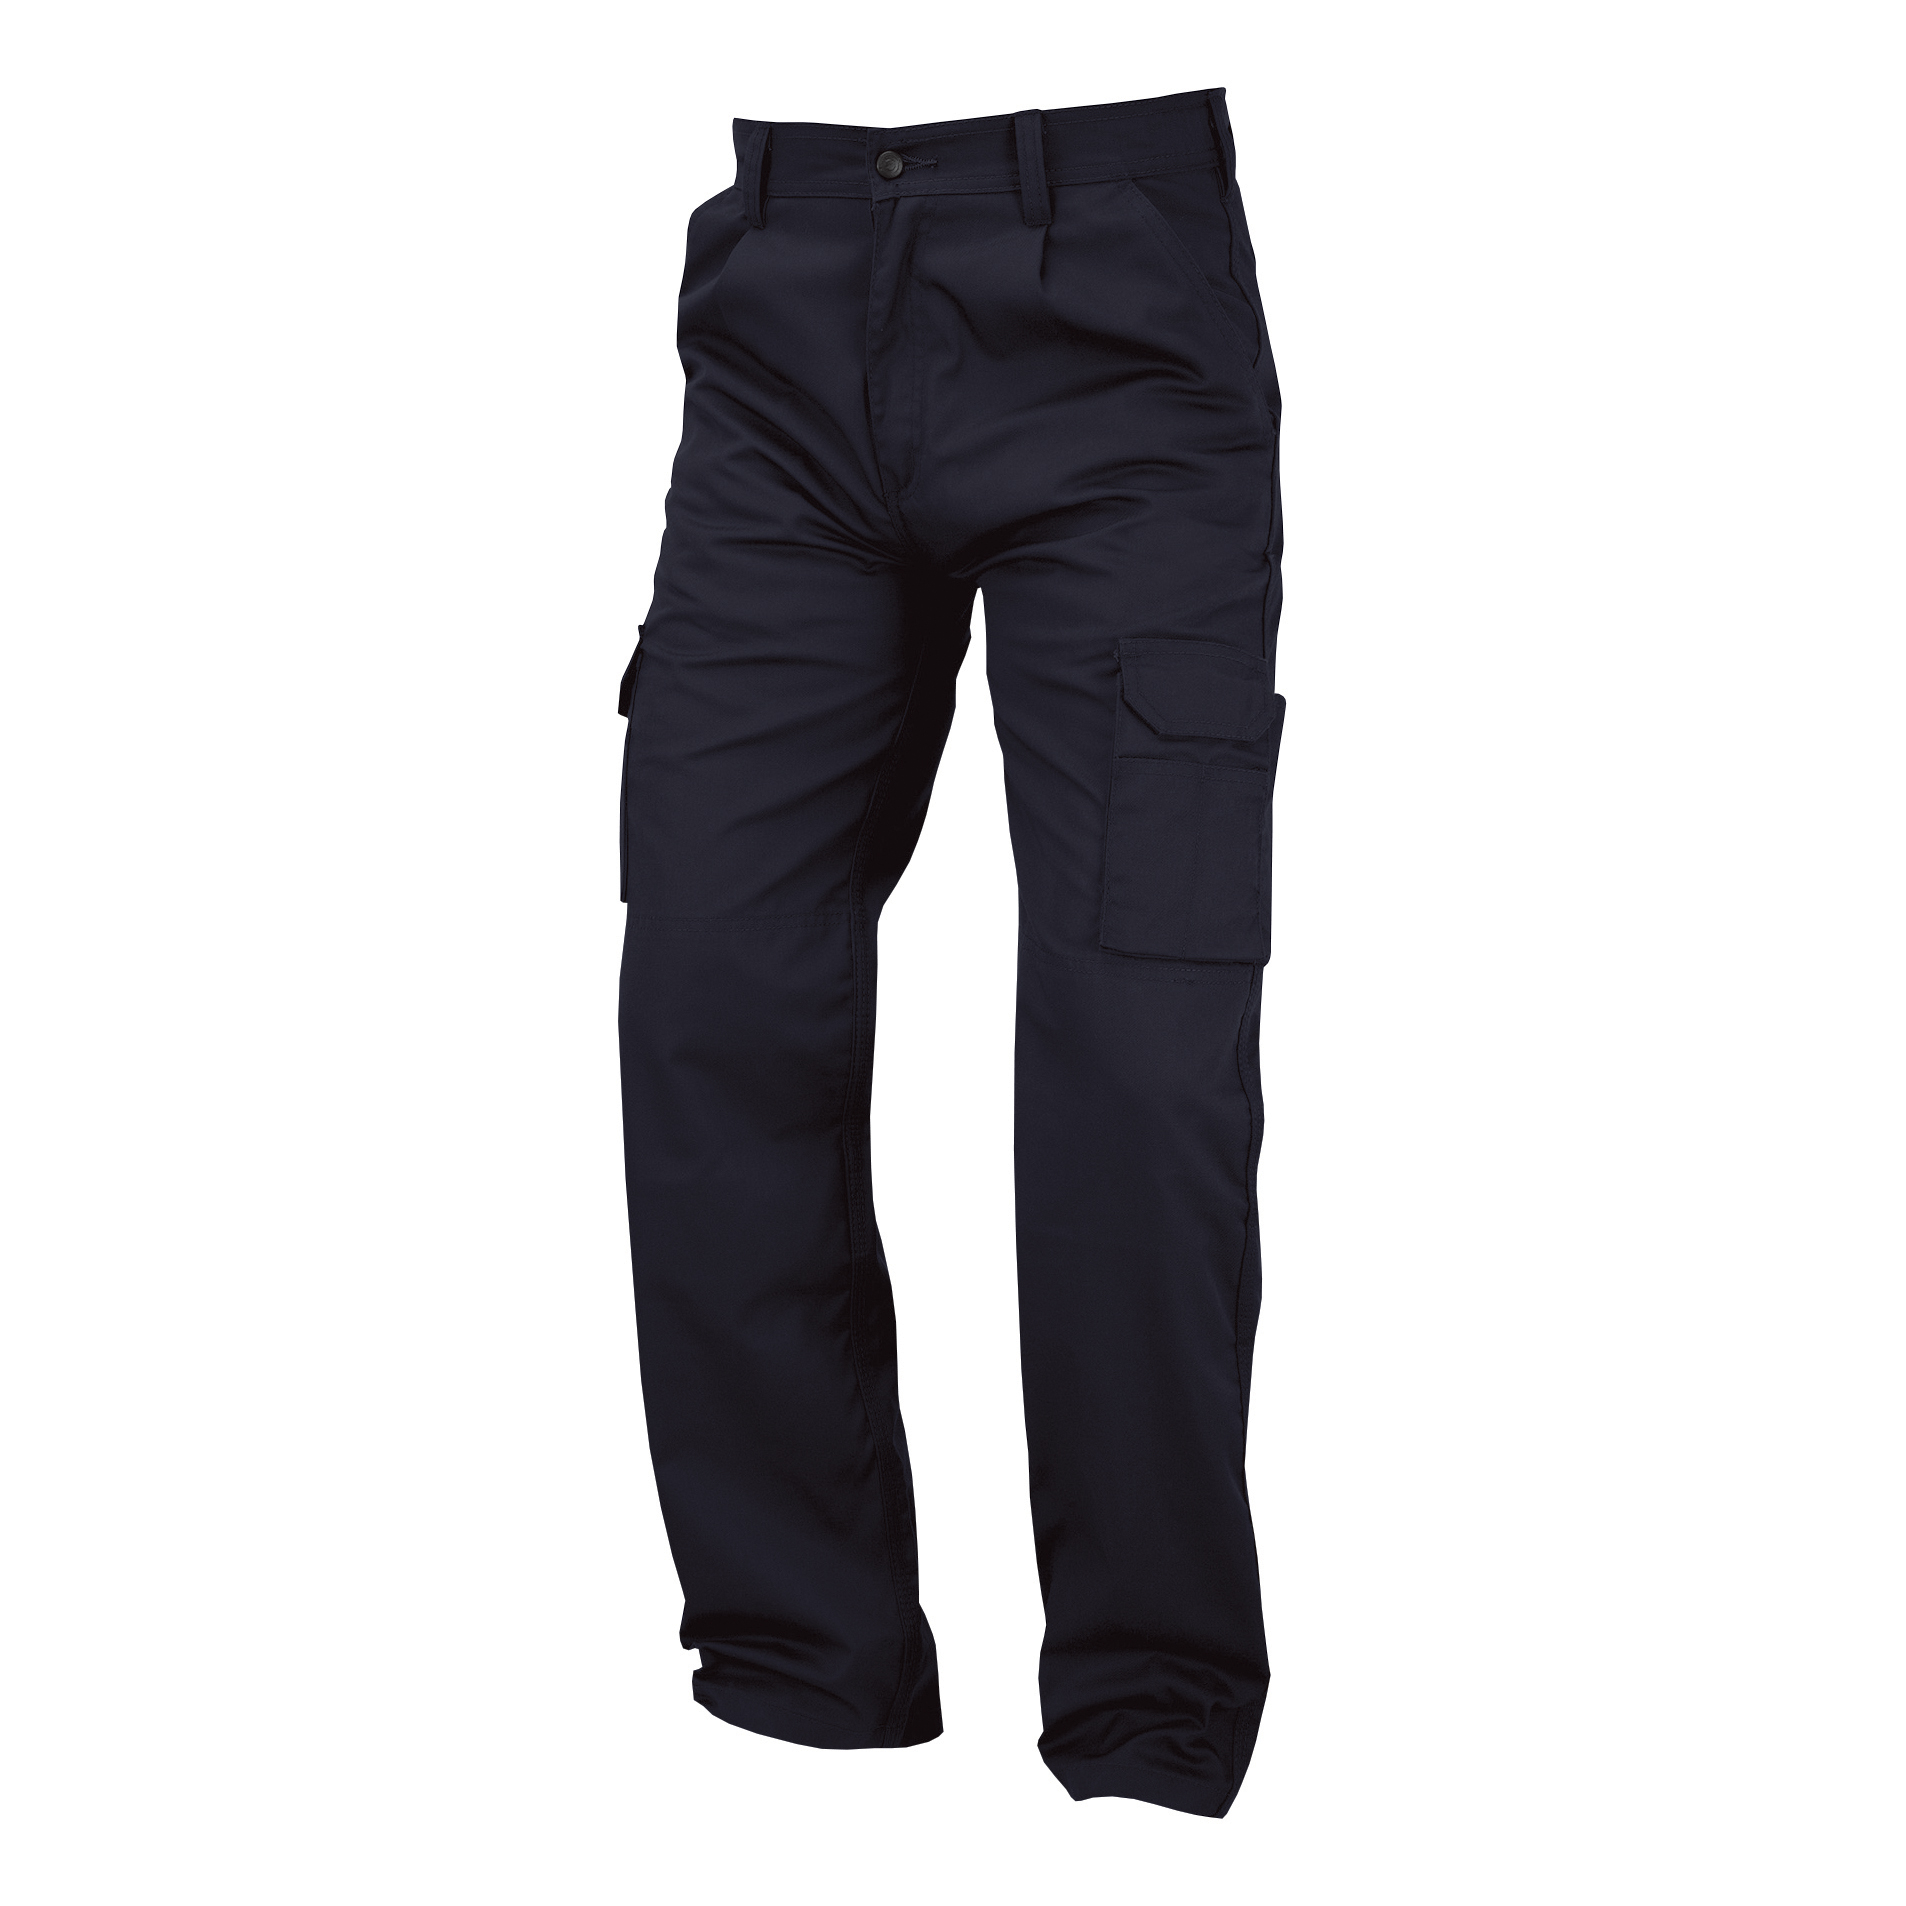 Combat / Cargo Combat Trousers Polycotton with Pockets 36in Regular Navy Blue Ref PCTHWN36 *1-3 Days Lead Time*